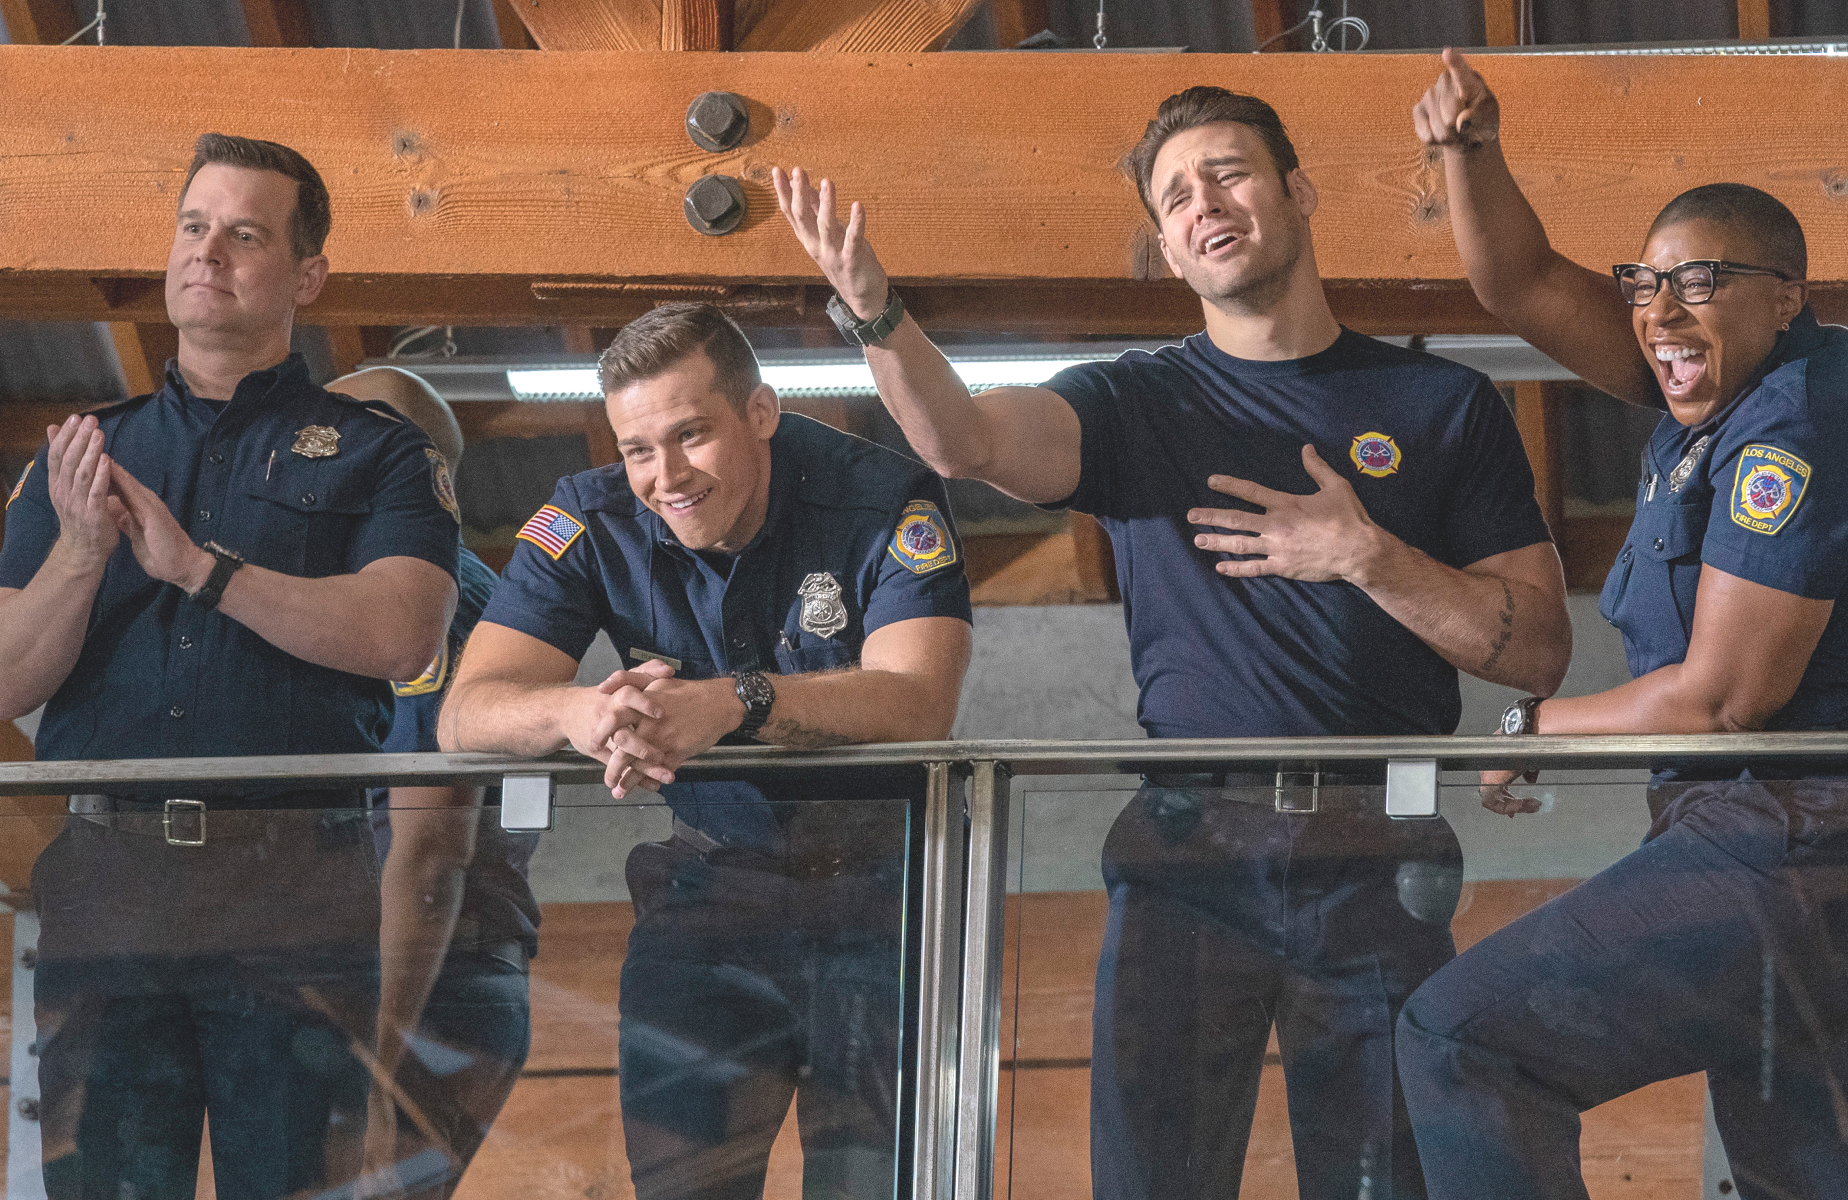 The 9-1-1 team can rejoice: they're FOX's #1 drama